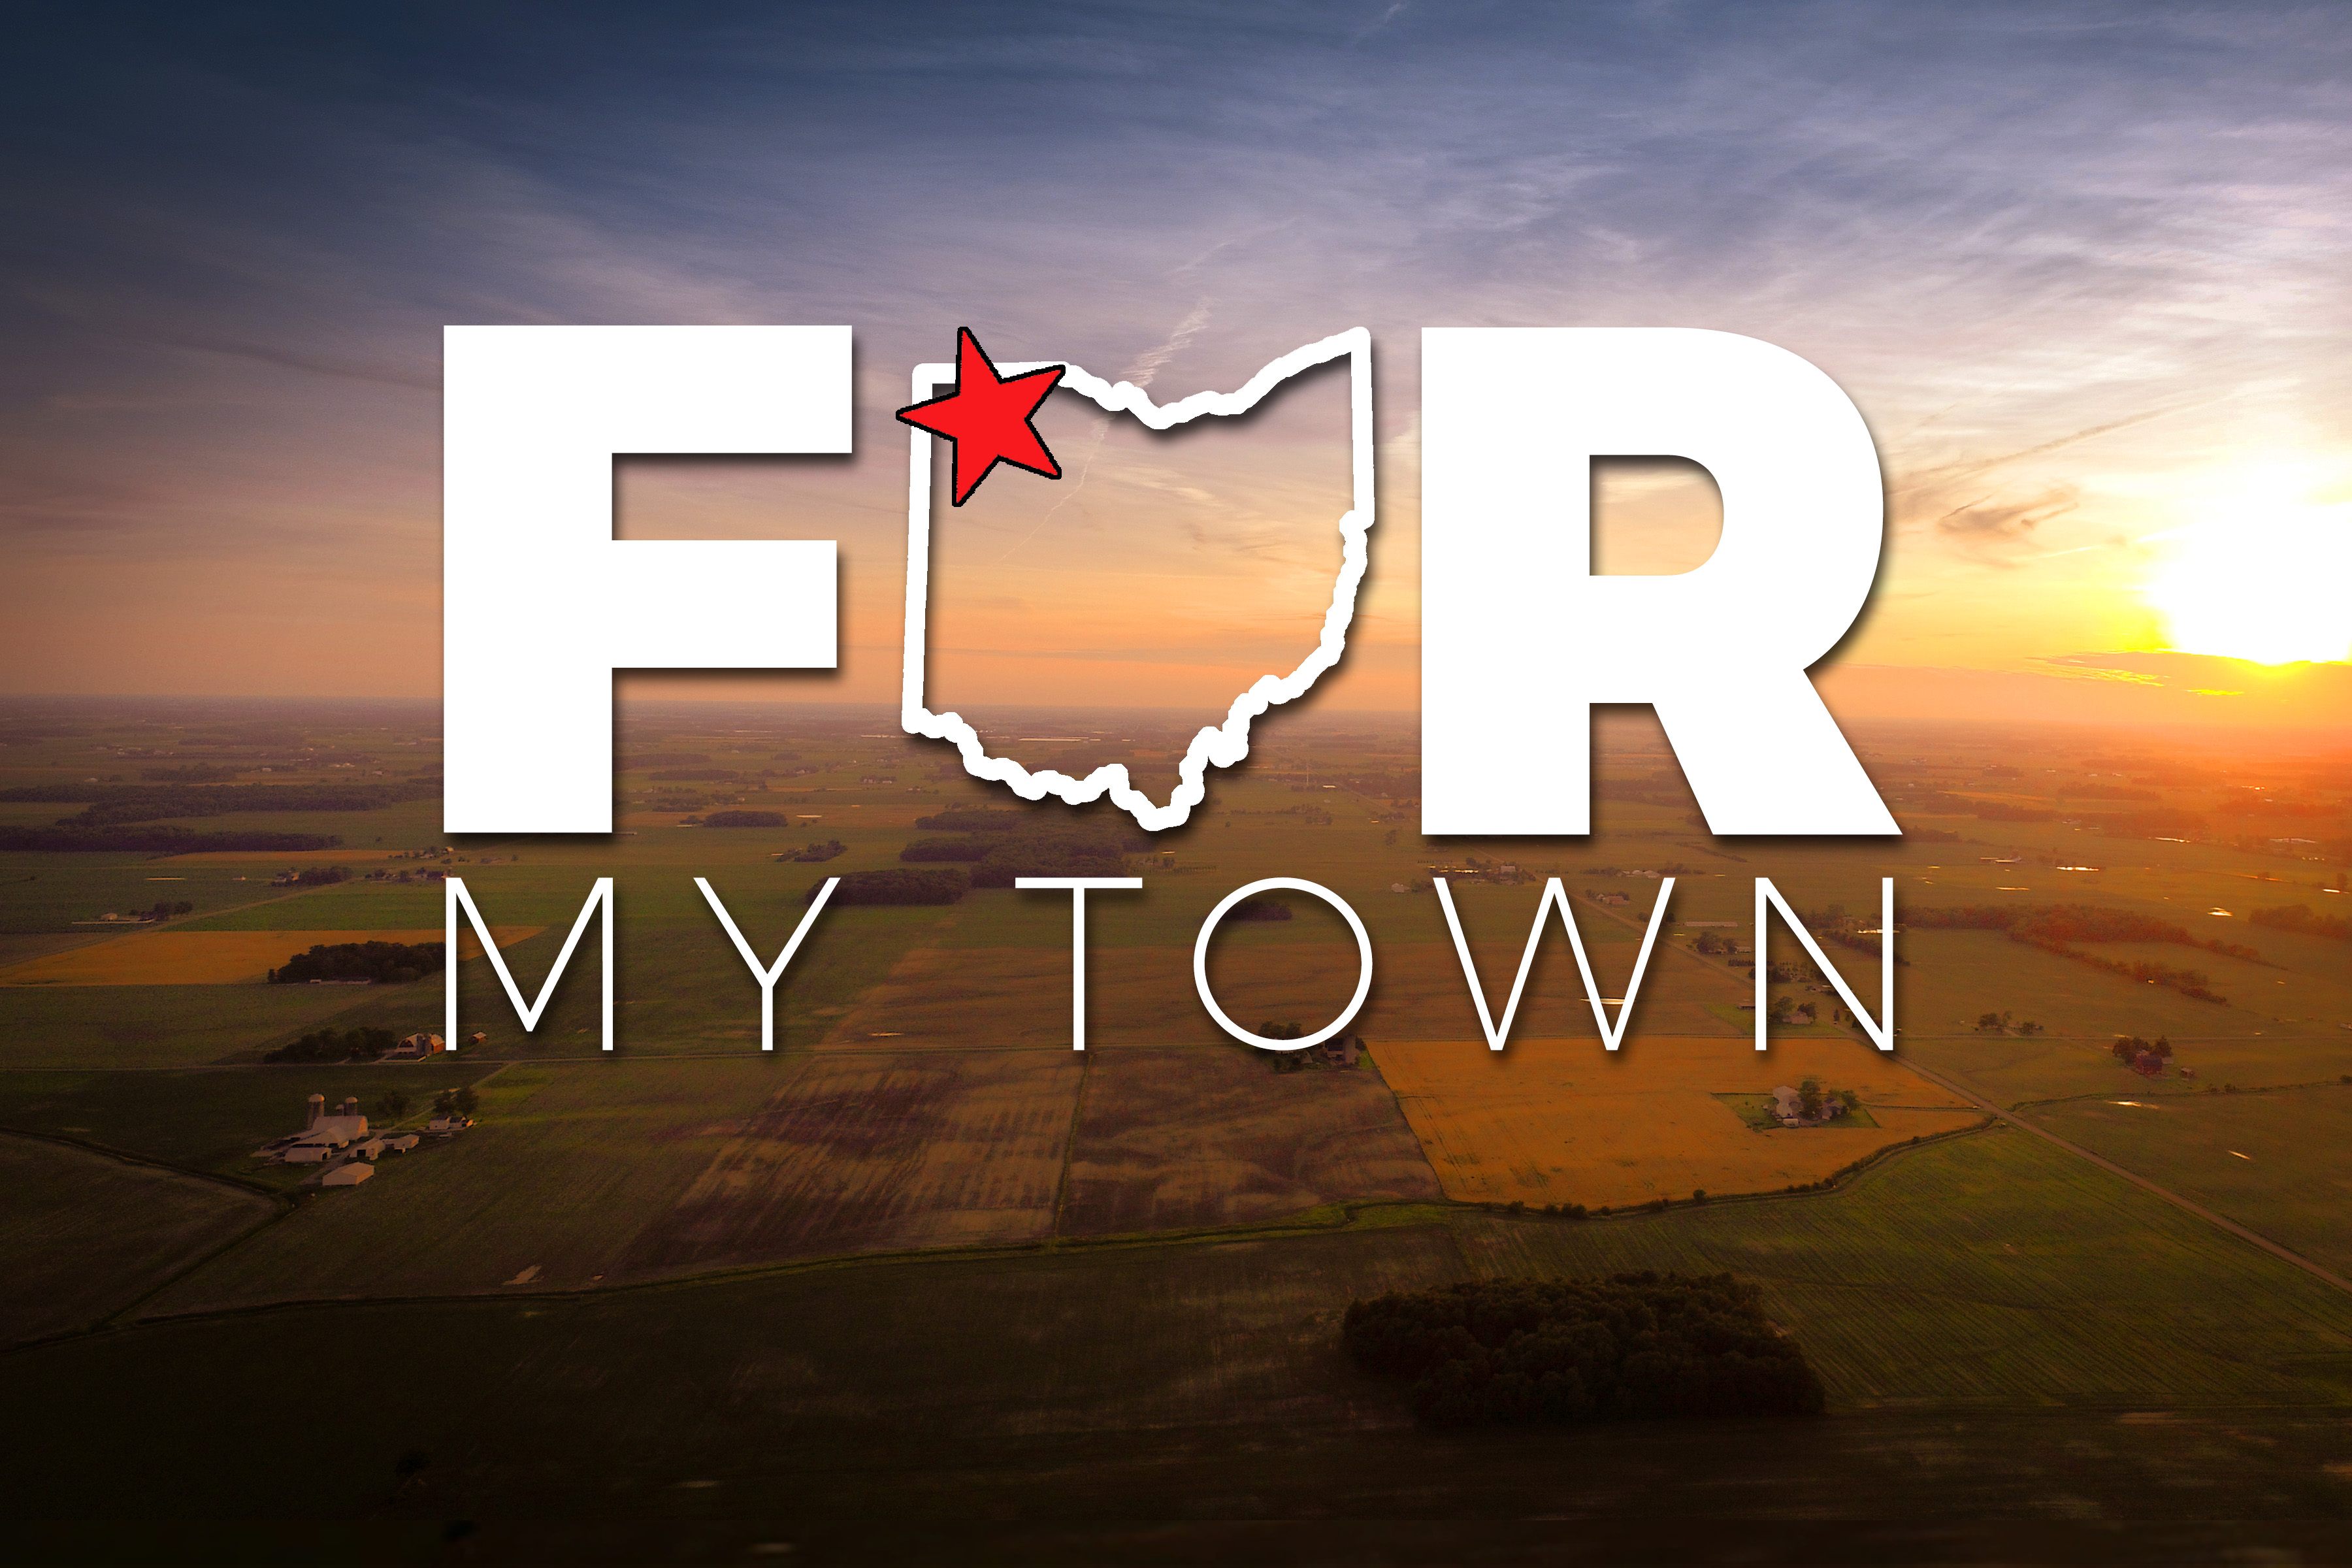 For my town 7.23.18